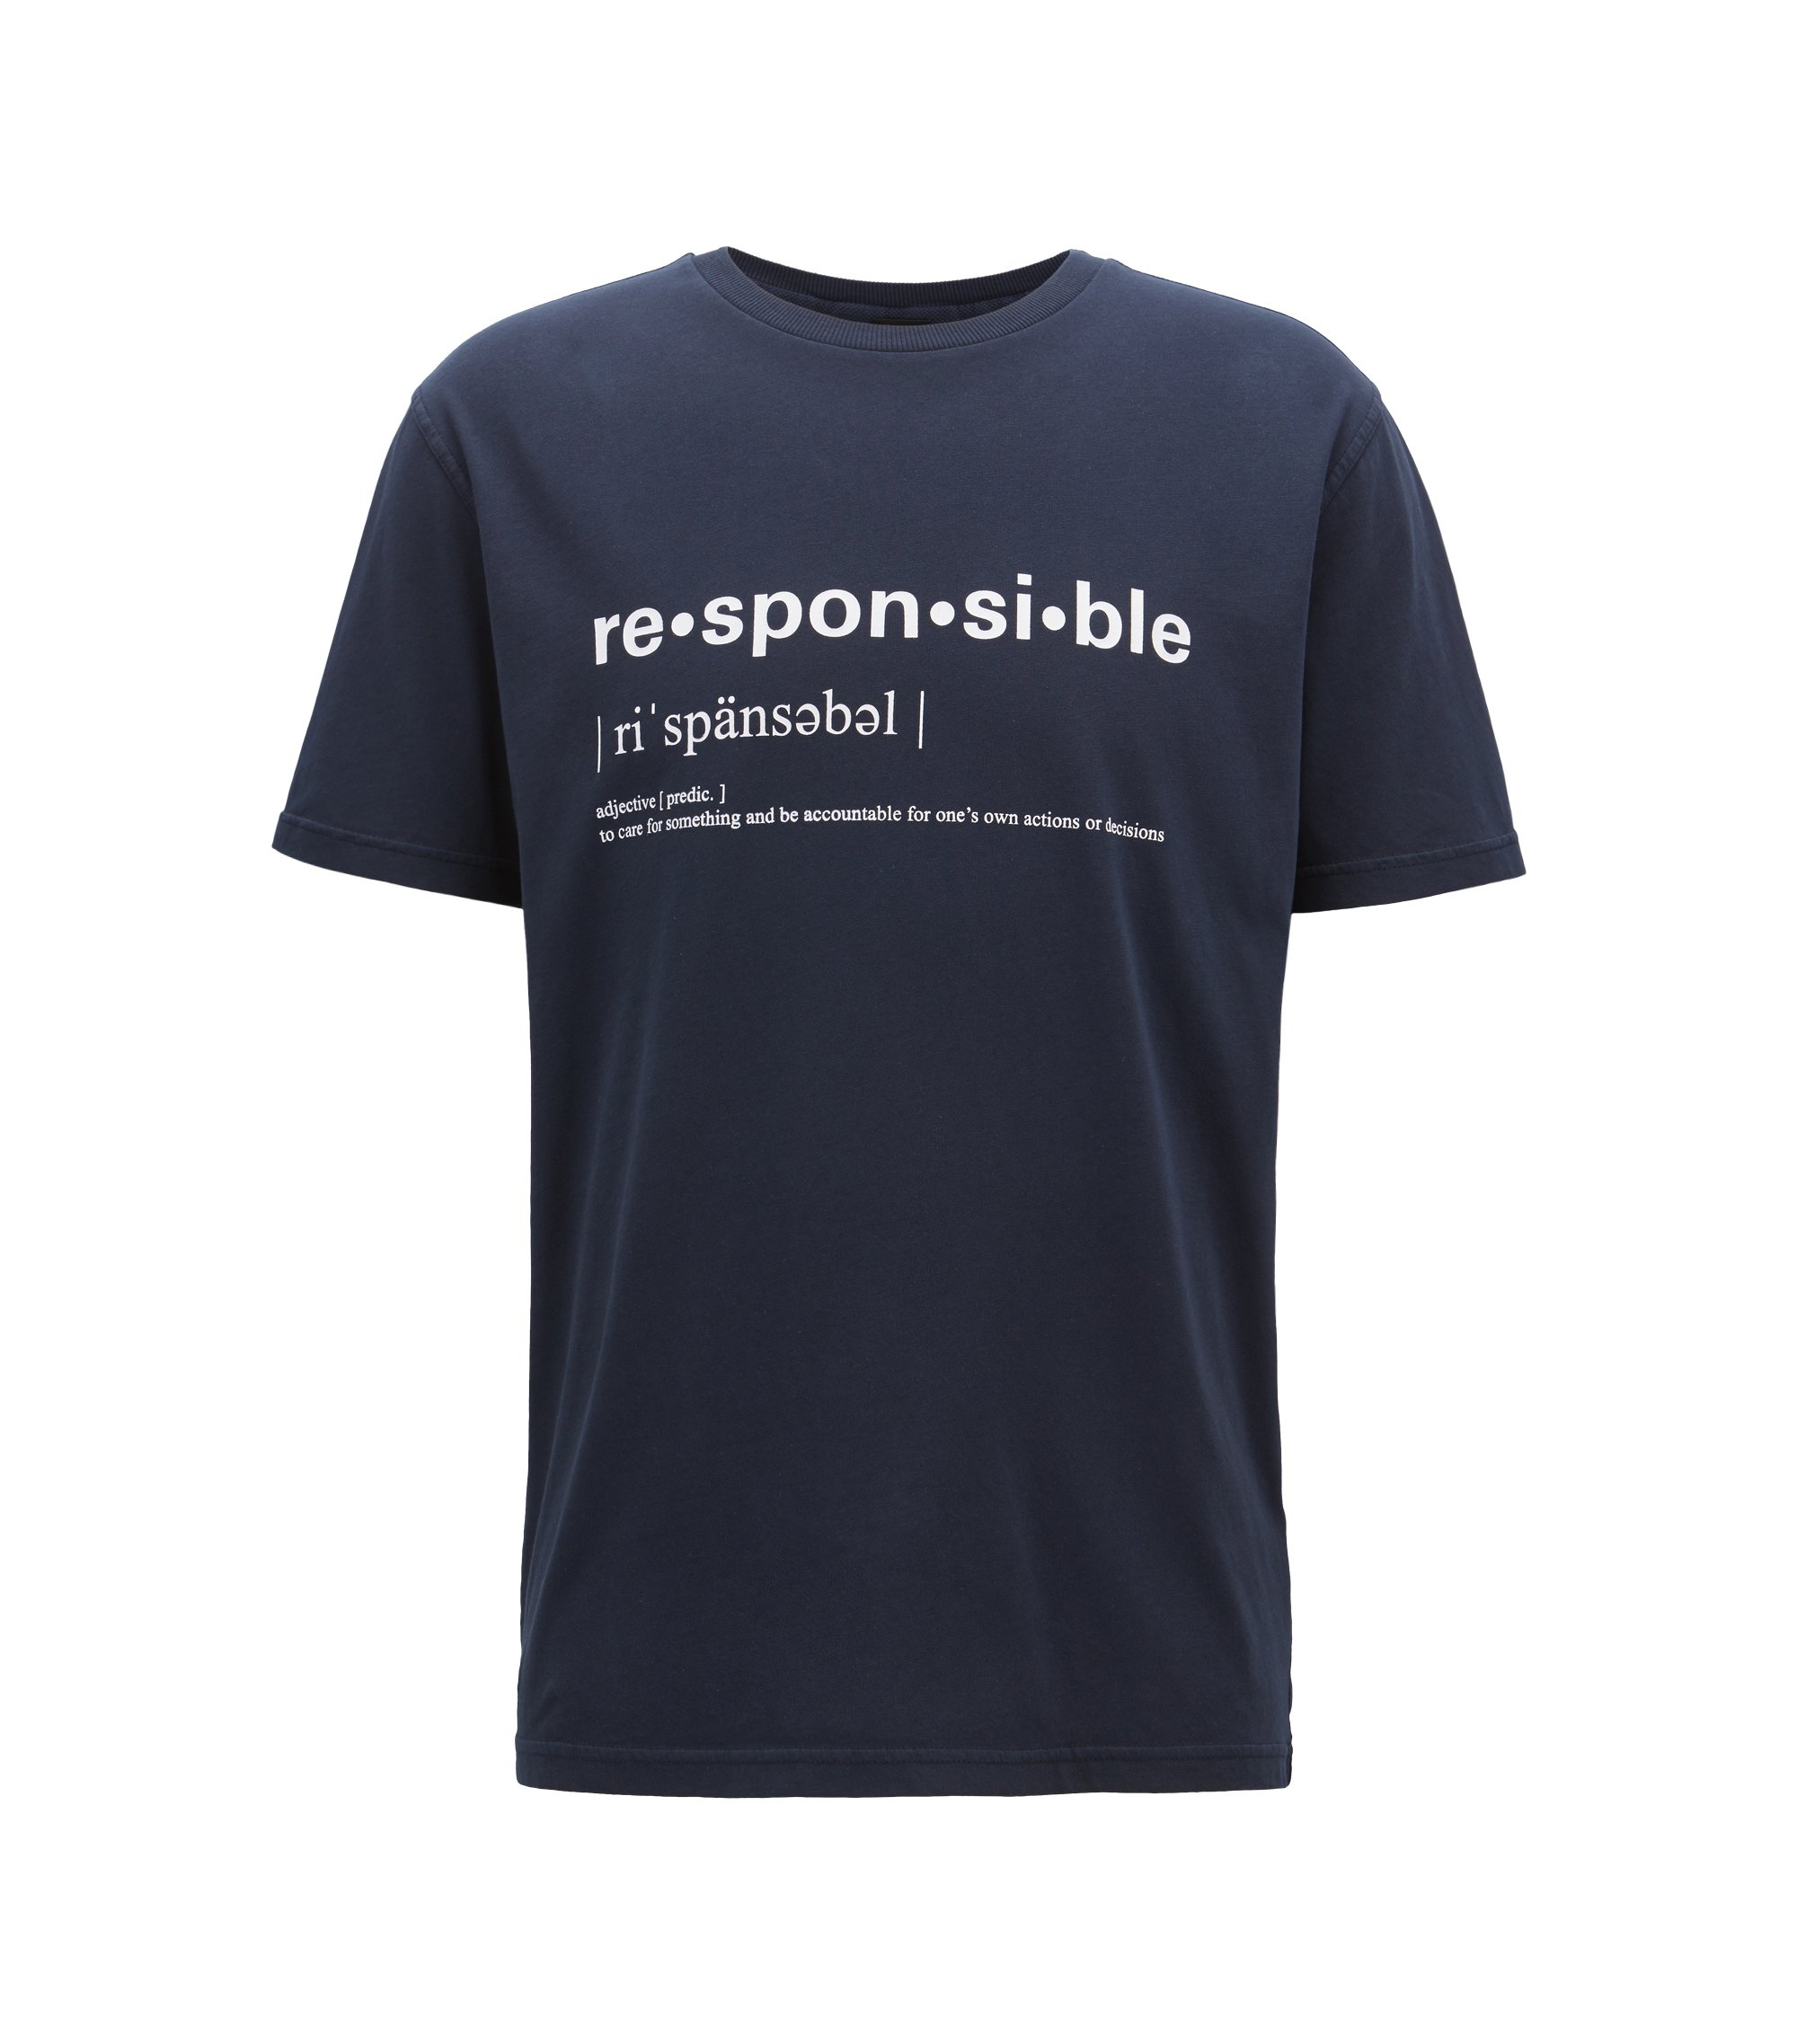 Relaxed-Fit T-Shirt aus recot²® Single Jersey mit Slogan, Dunkelblau